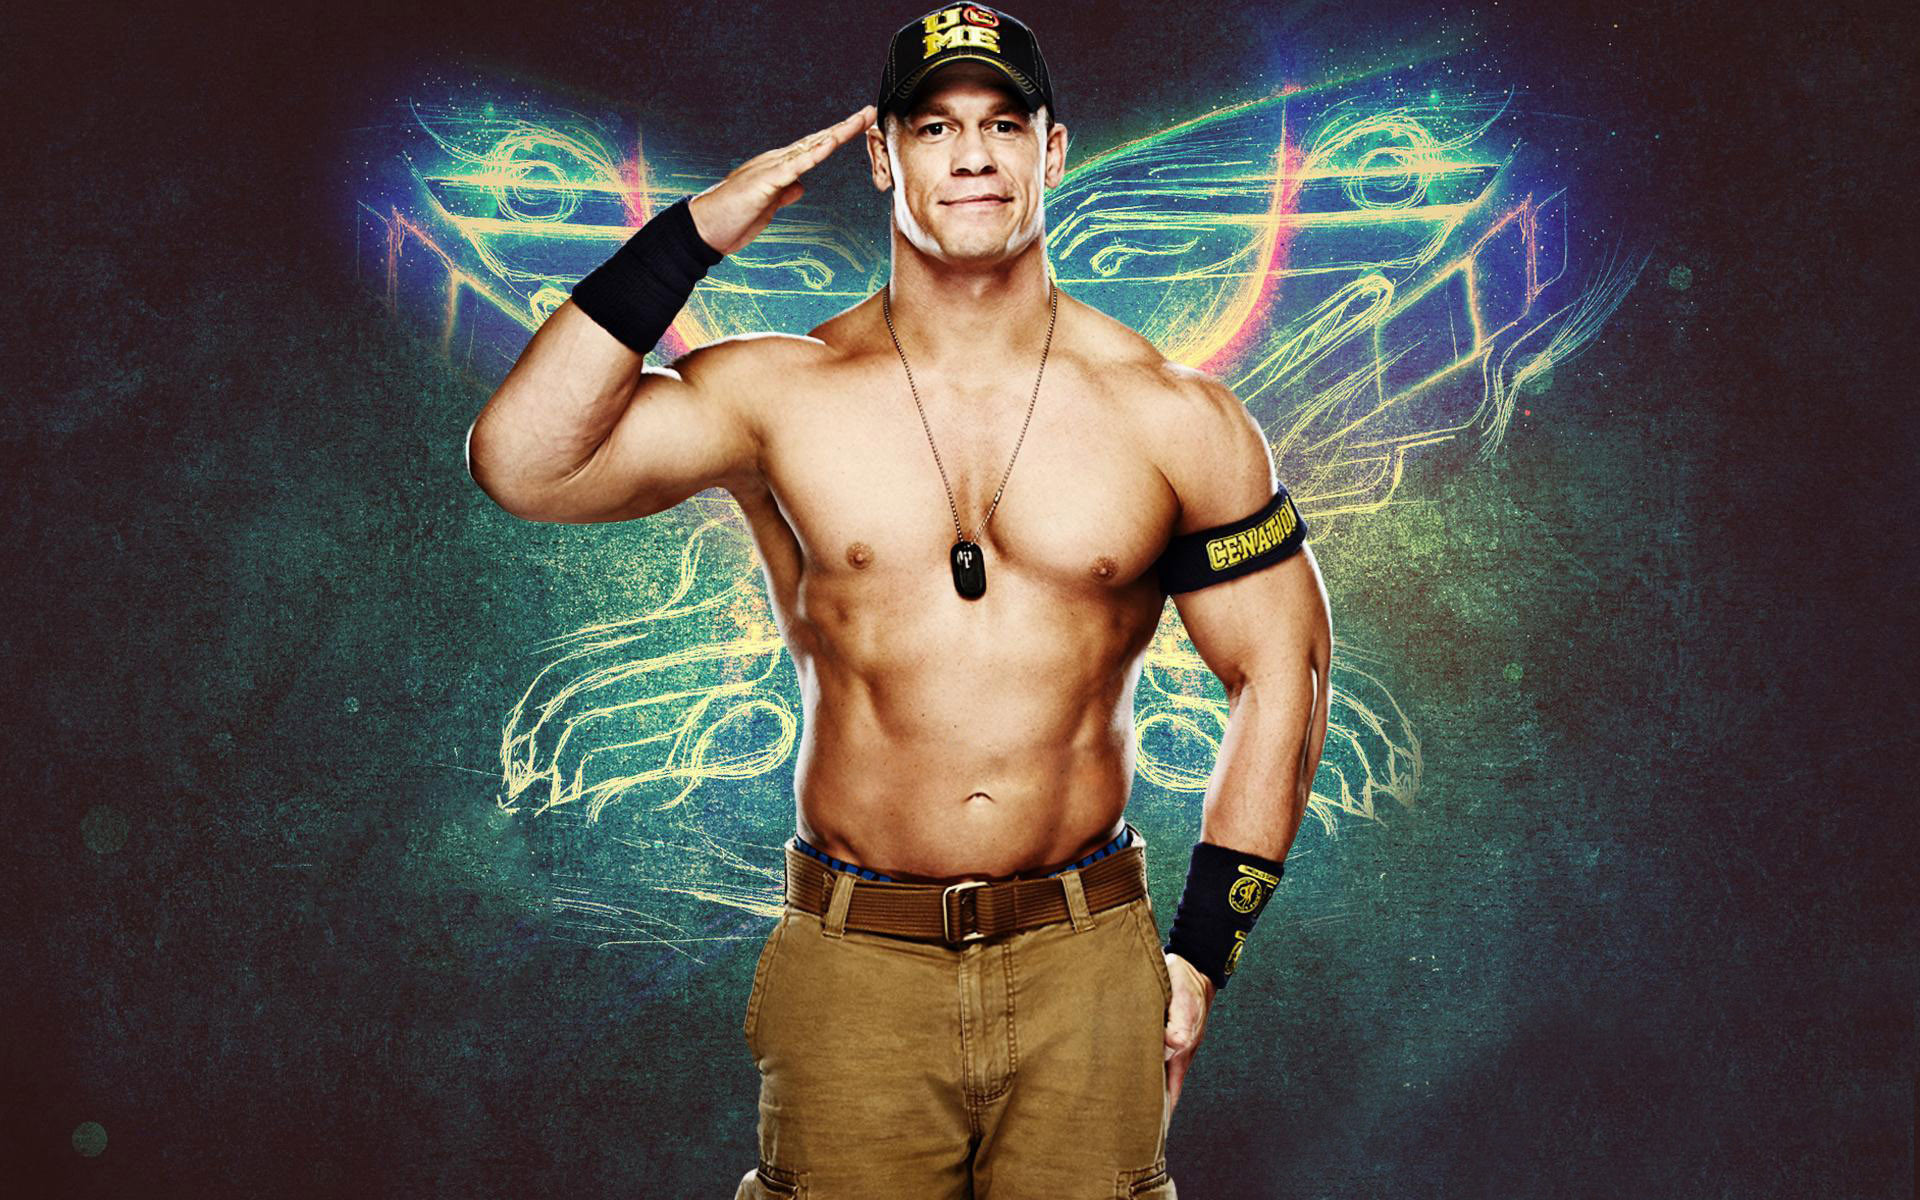 1920x1200 Photos Download Desktop John Cena HD Wallpapers.